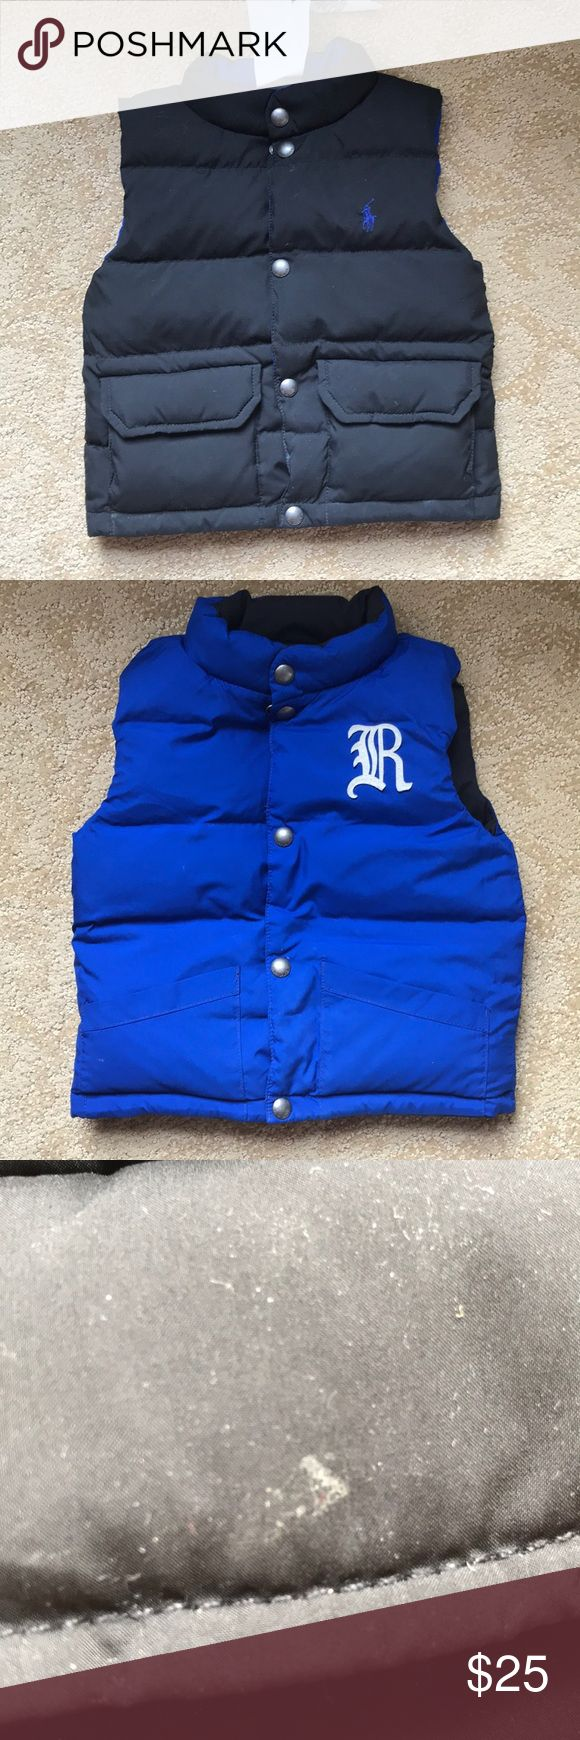 Reversible little boy puffy vest Lack side and a blue side.  Black side with some small spots that appear they would wash out( last photo)  but haven't tried.    The tag with the size on it is gone but I believe it's 12-18 Months.  My son wore it when he was 1 year and he was on the larger side. Polo by Ralph Lauren Jackets & Coats Vests